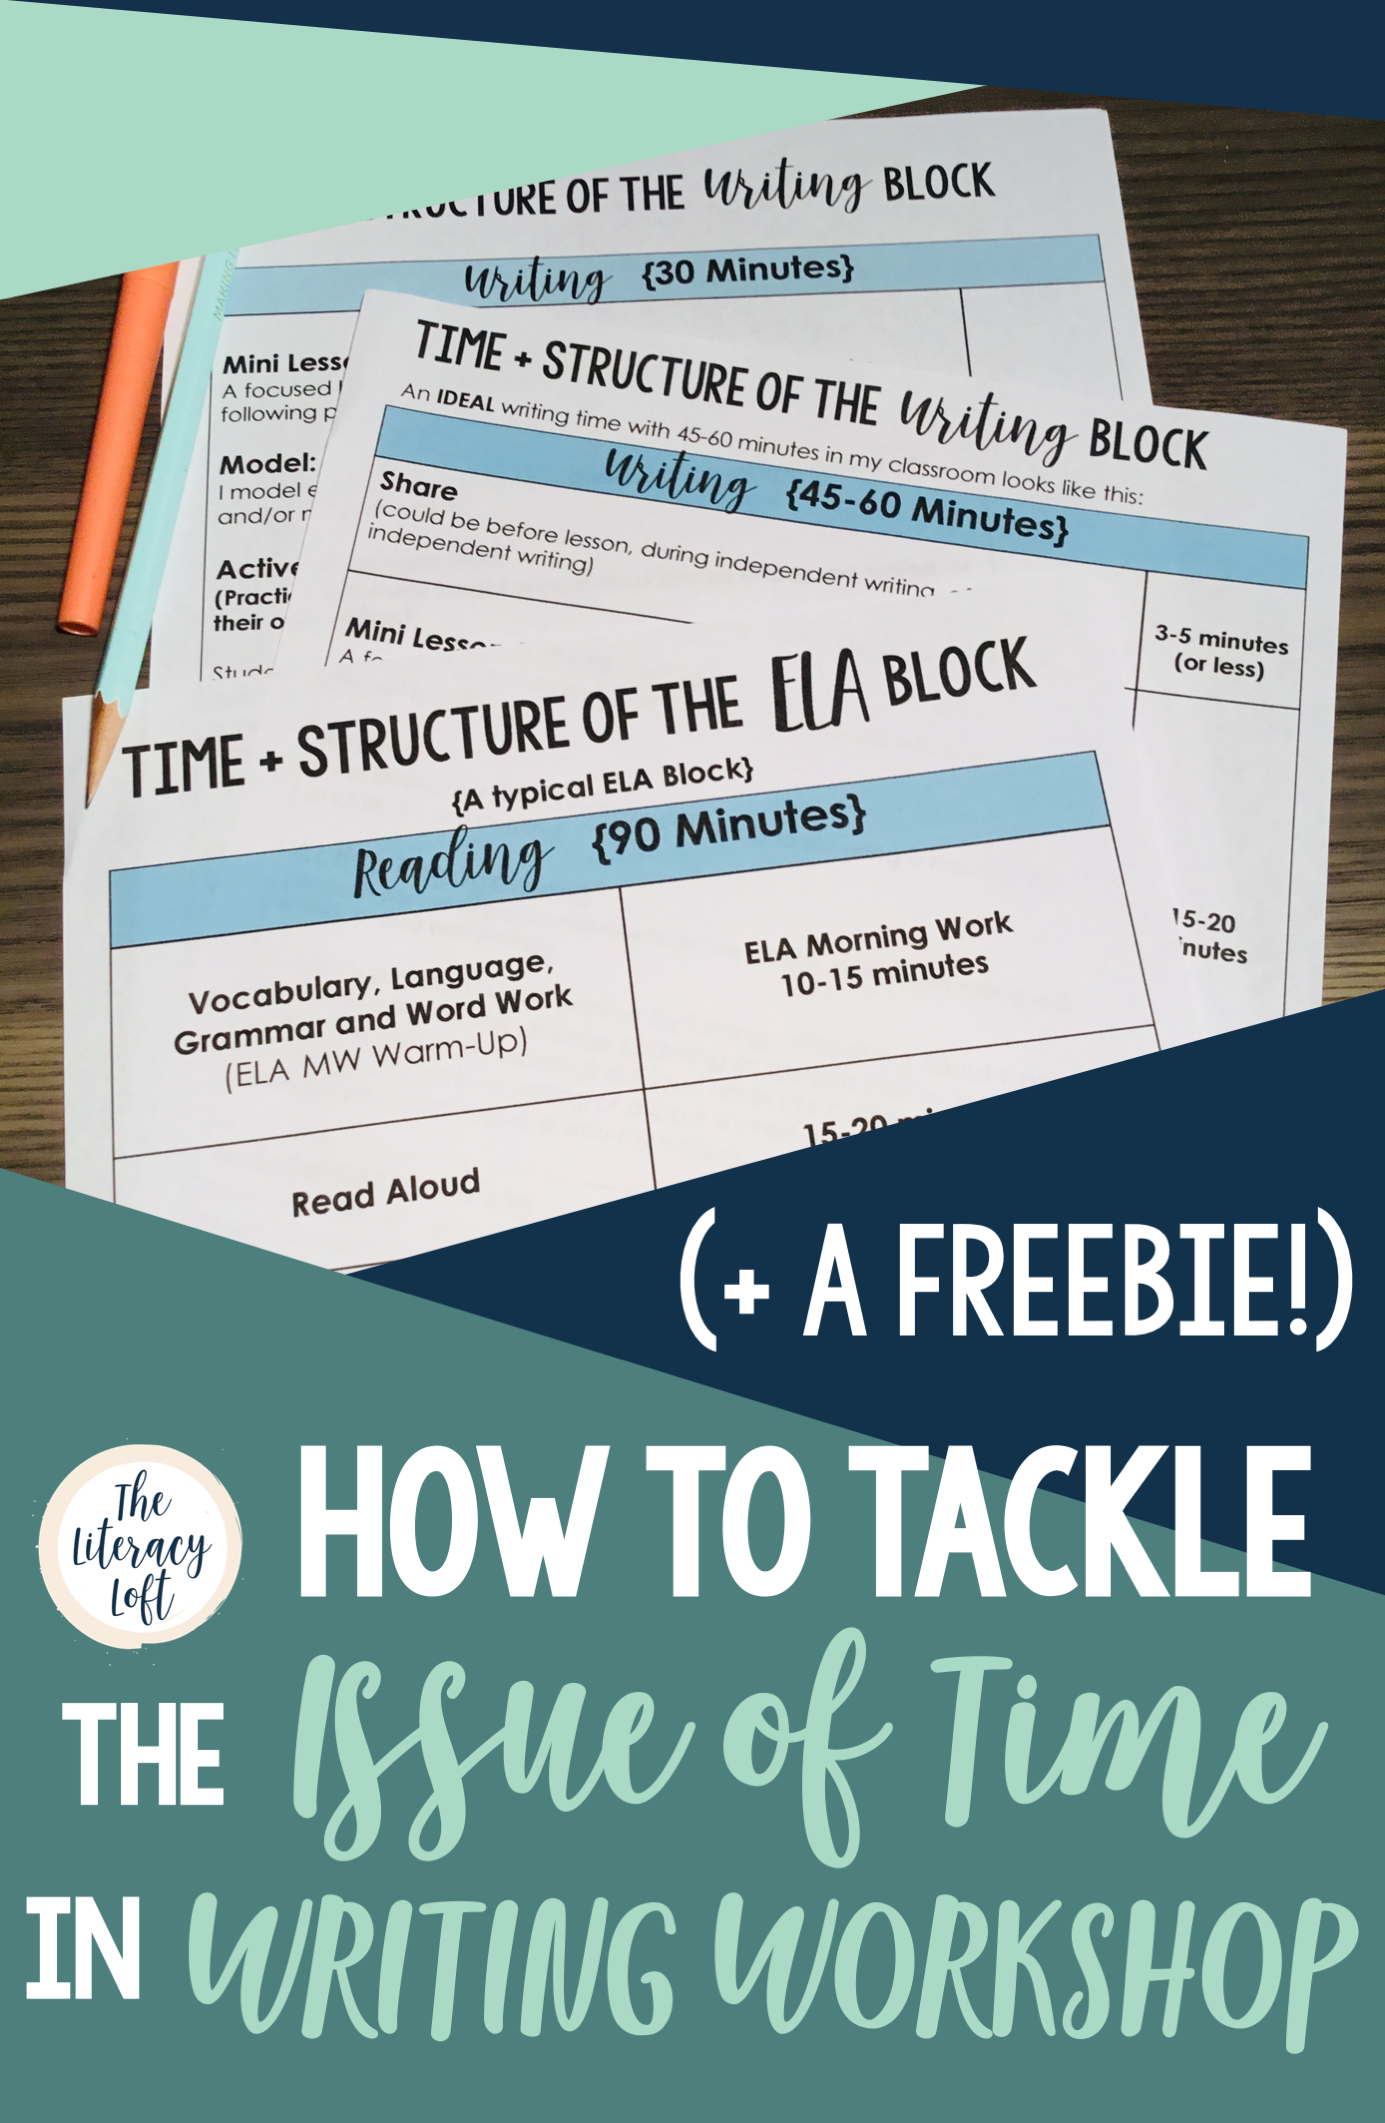 How to Tackle the Issue of Time in Writing Workshop